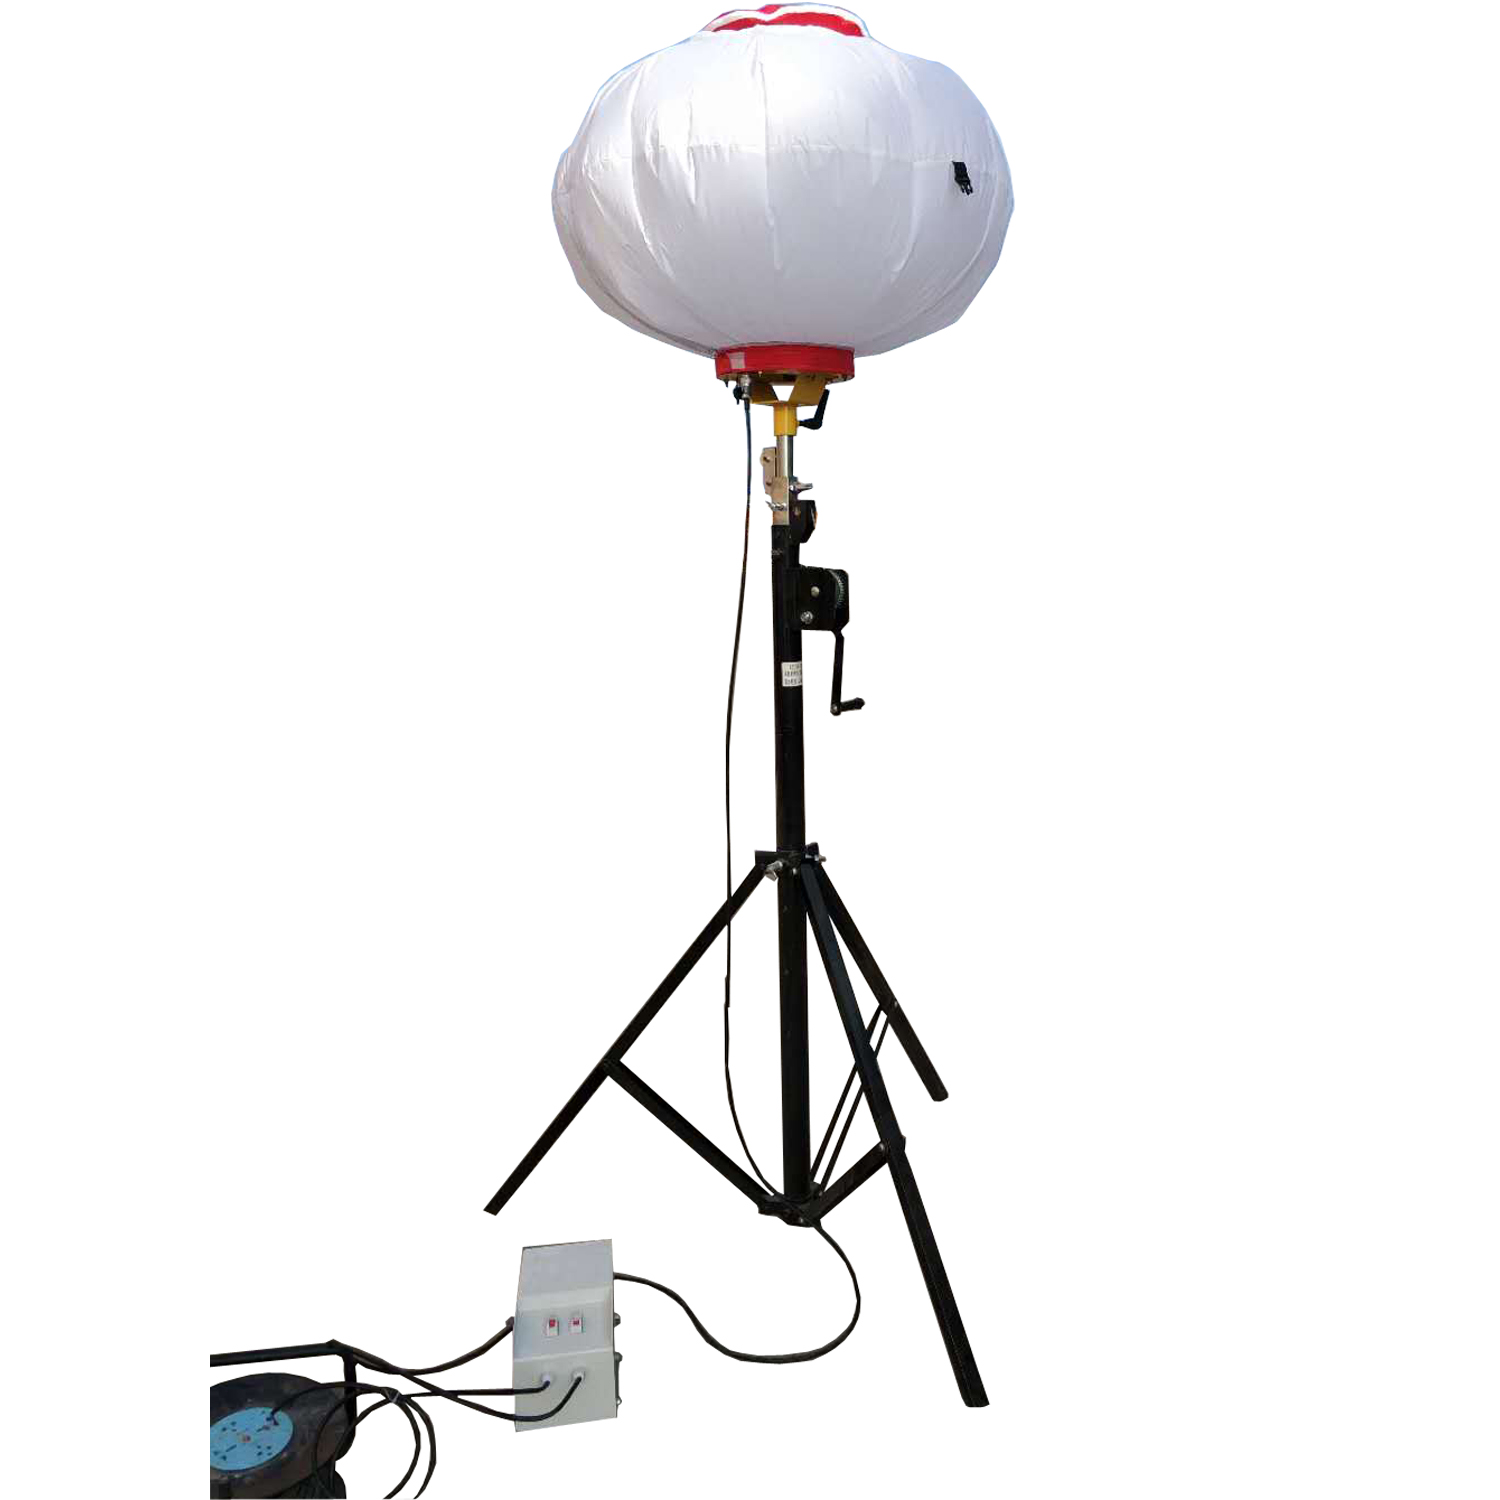 China made portable Tripod balloon light tower for outdoor